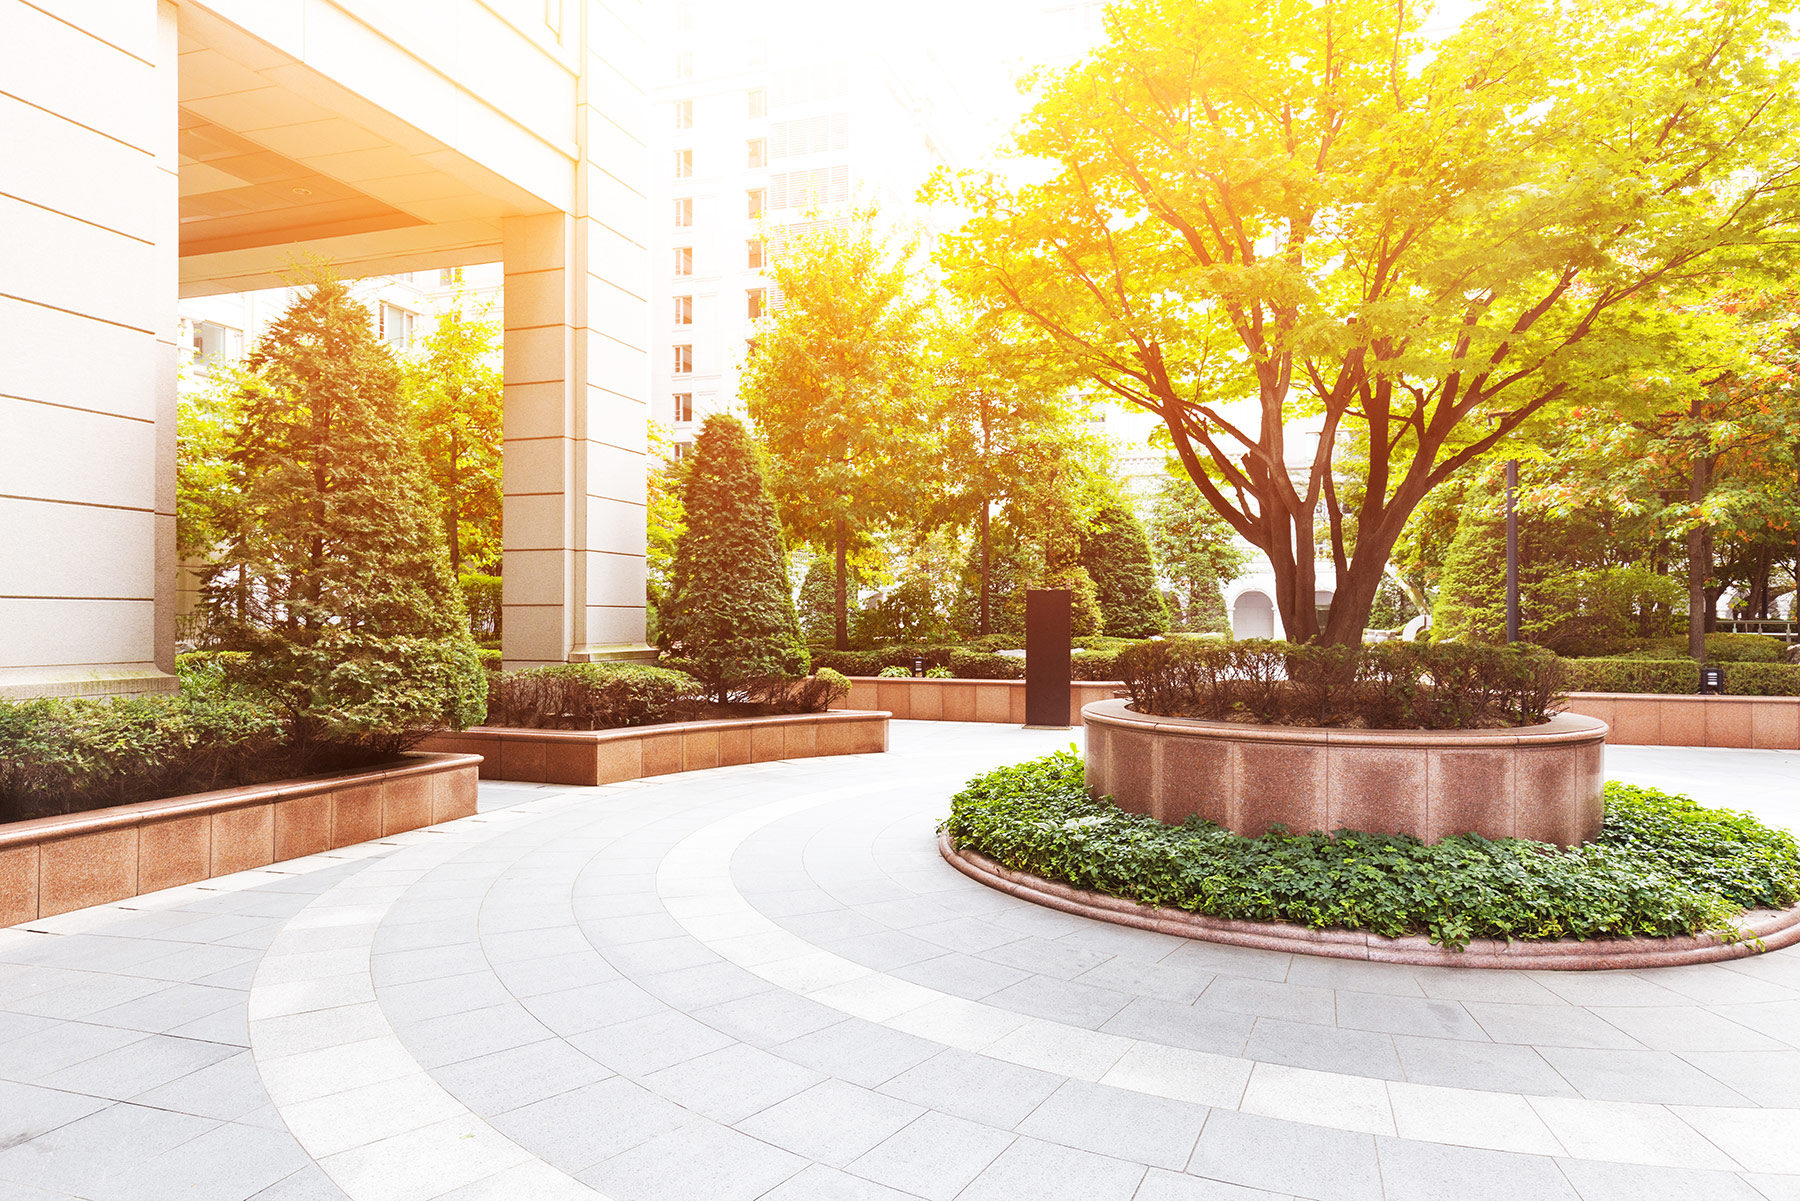 View of beautiful outdoor courtyard in commercial setting